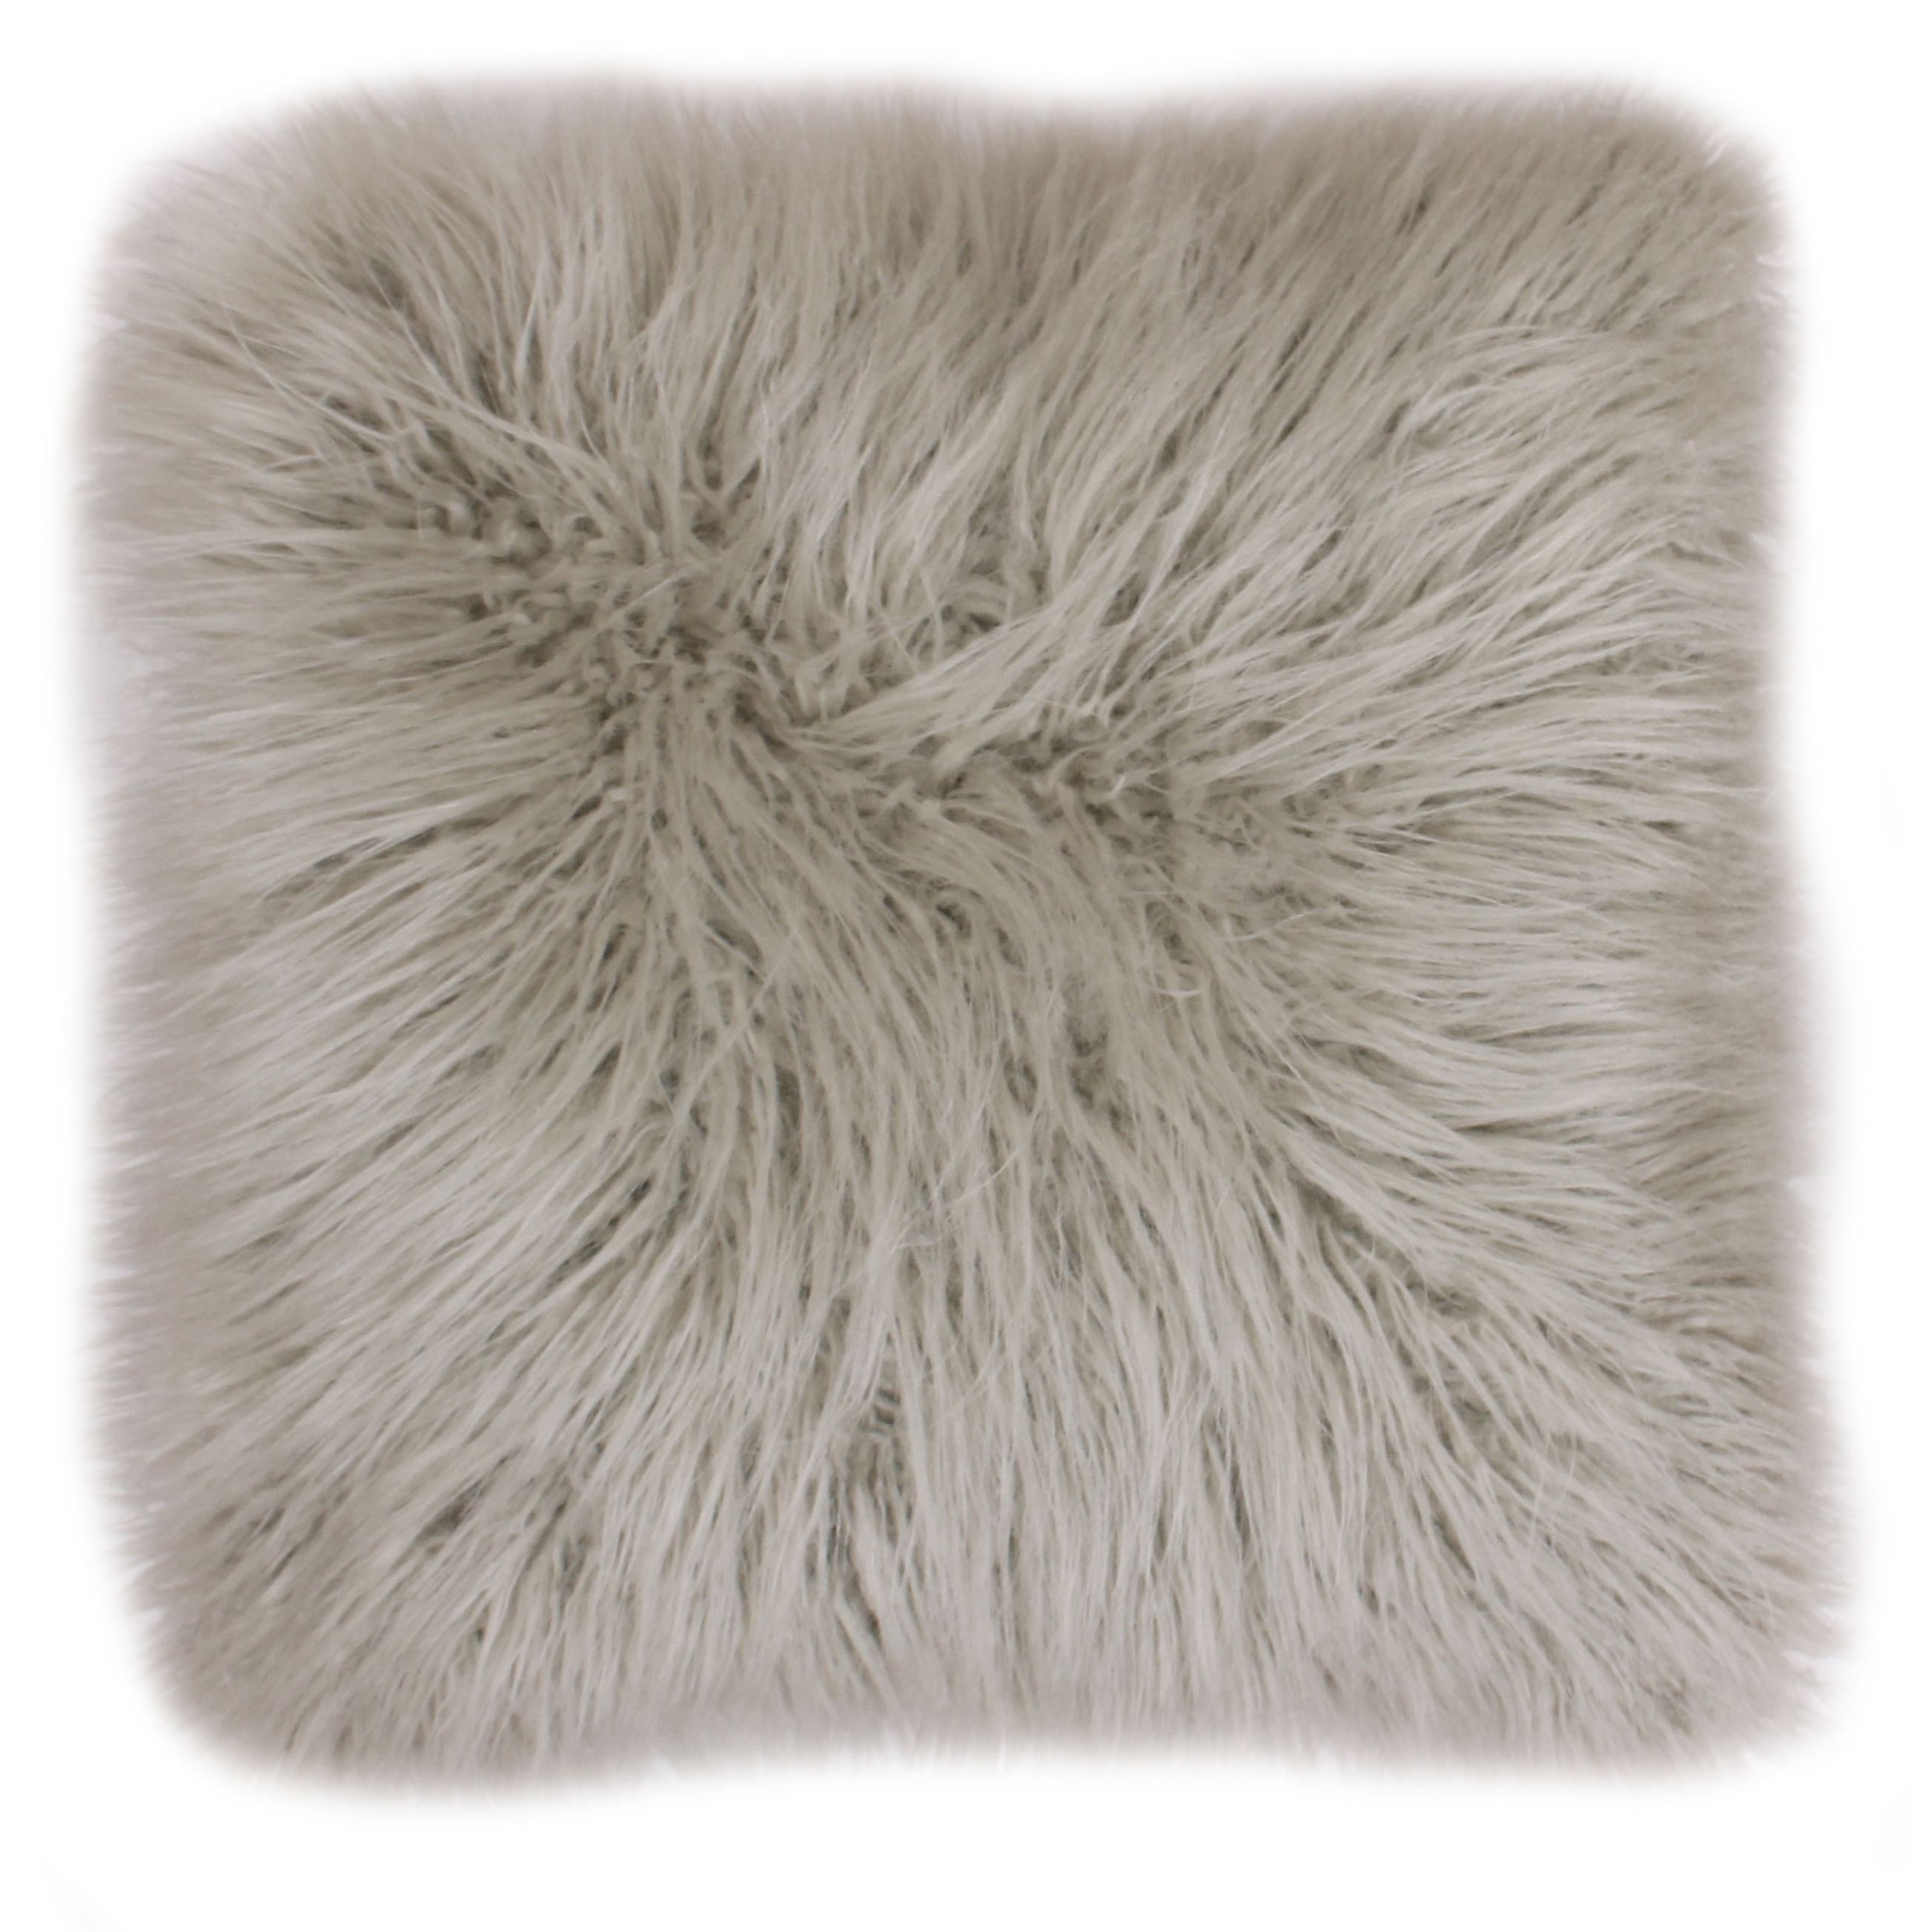 Enhance your home decor with this extra large faux fur throw pillow. Dyed to match its micromink back, this throw is available in a variety of colors.